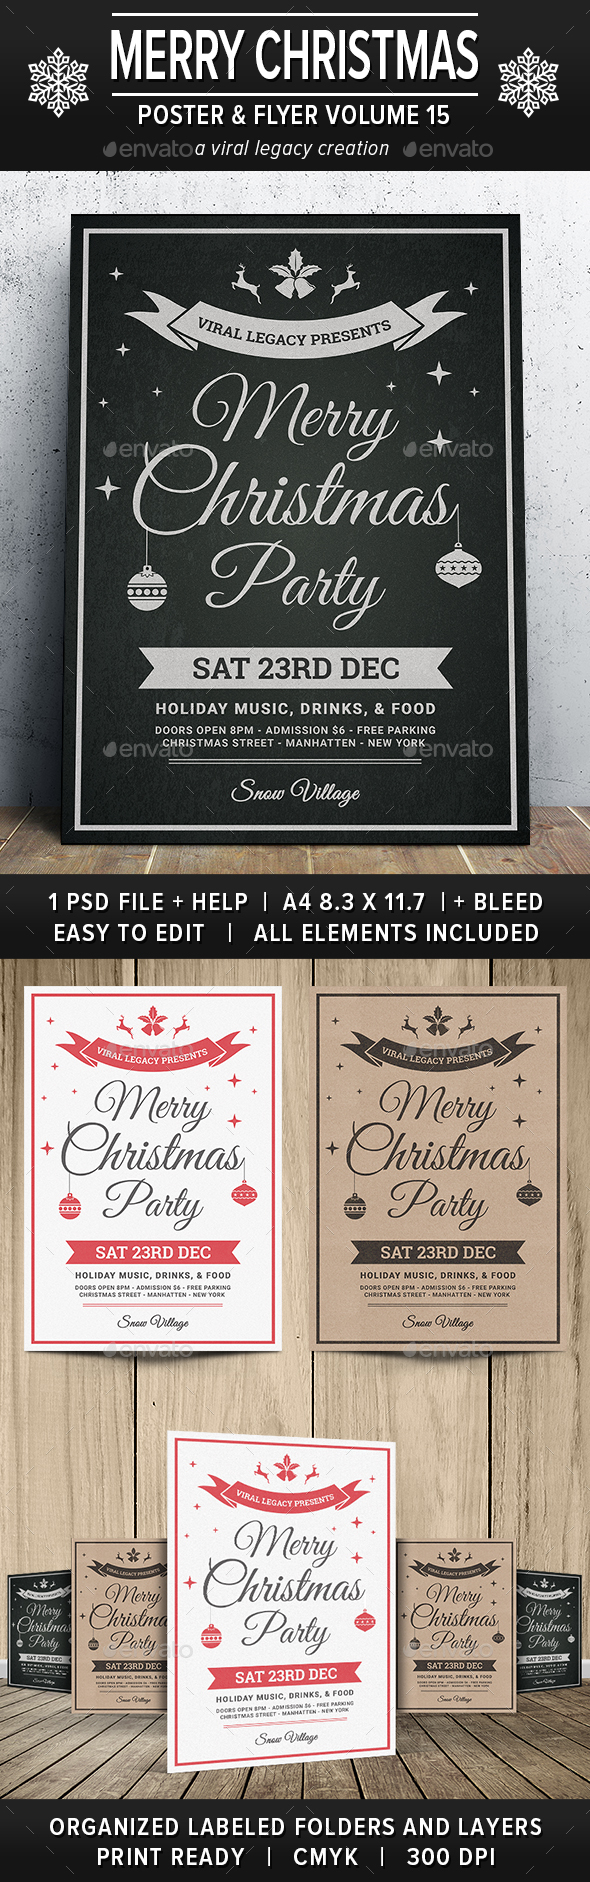 Merry Christmas Poster / Flyer V15 - Flyers Print Templates